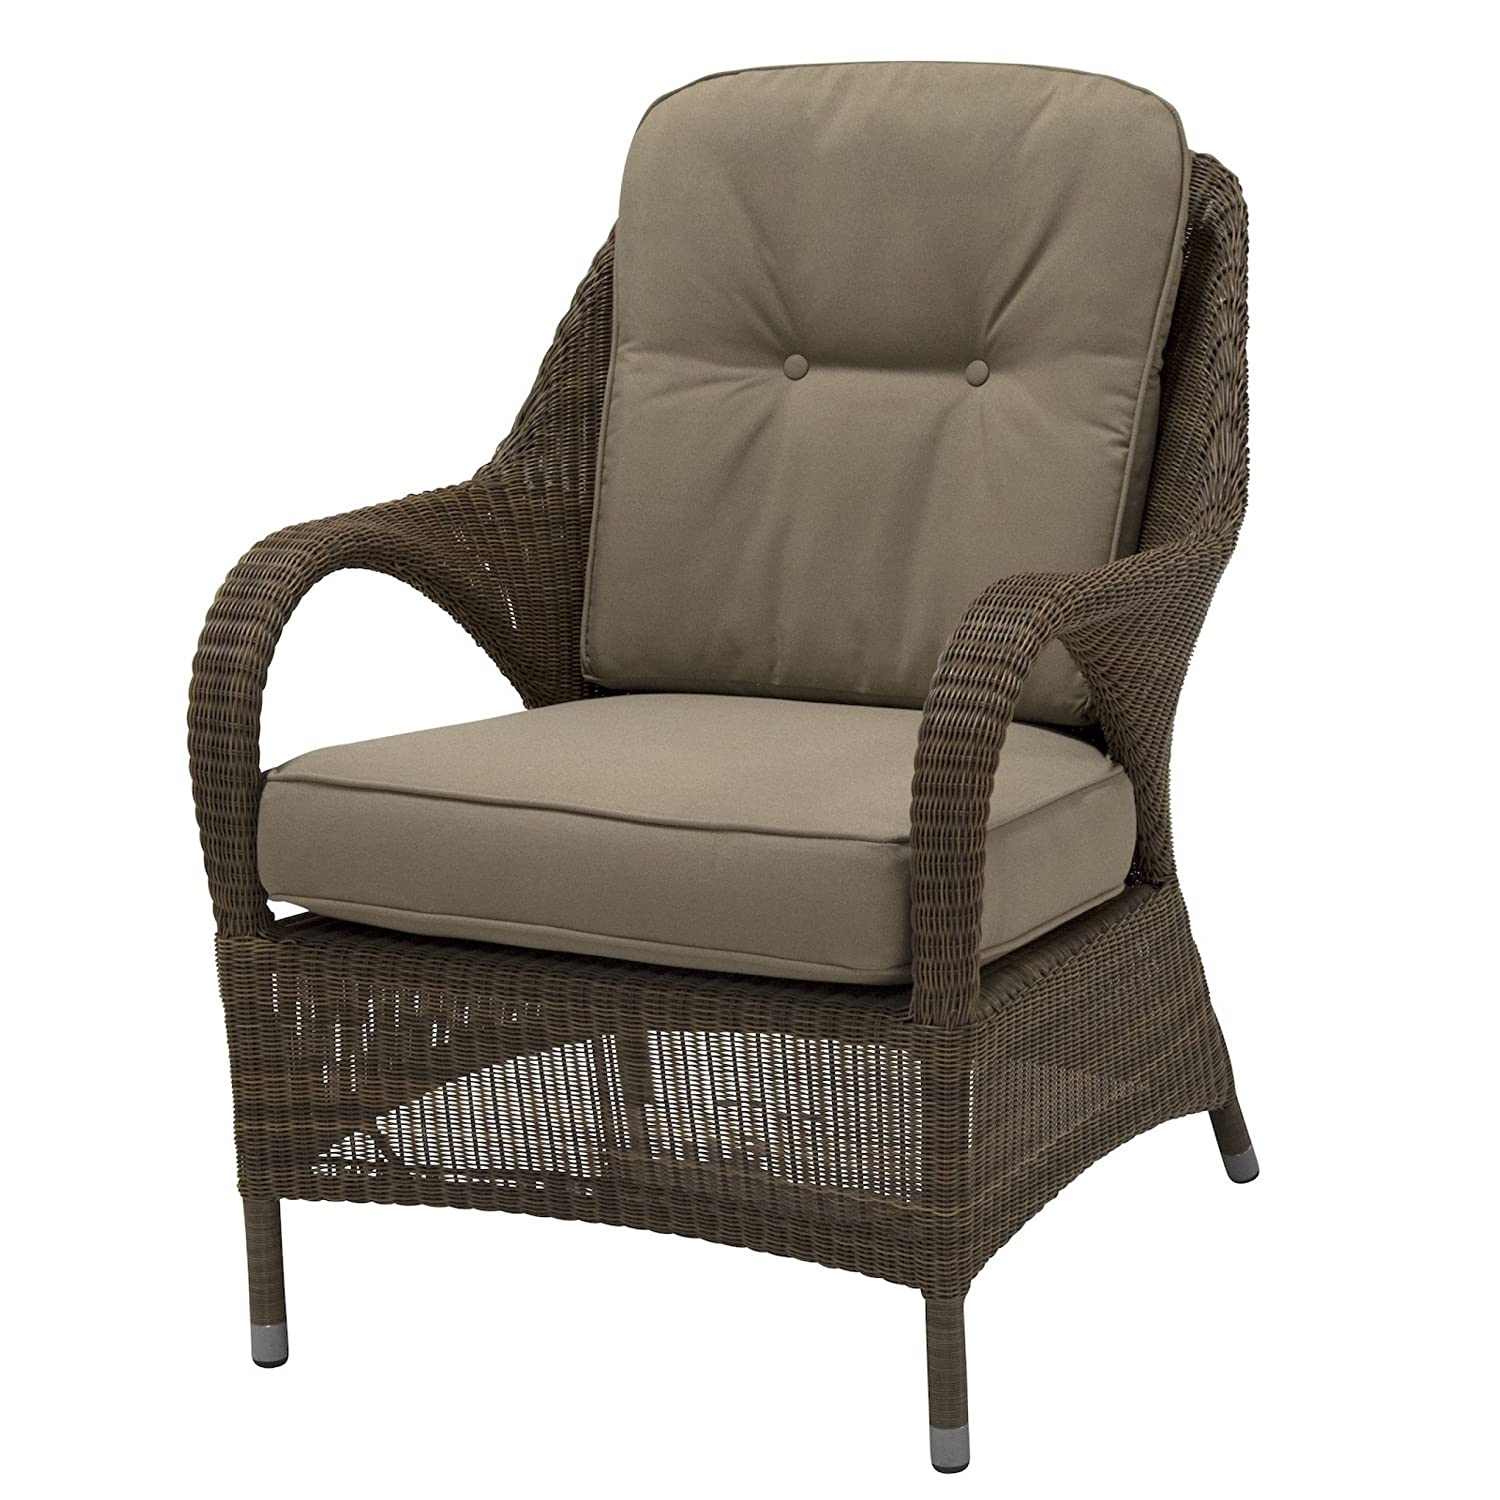 4Seasons Outdoor Sussex living Sessel Polyloom taupe Loungesessel inkl Kissen